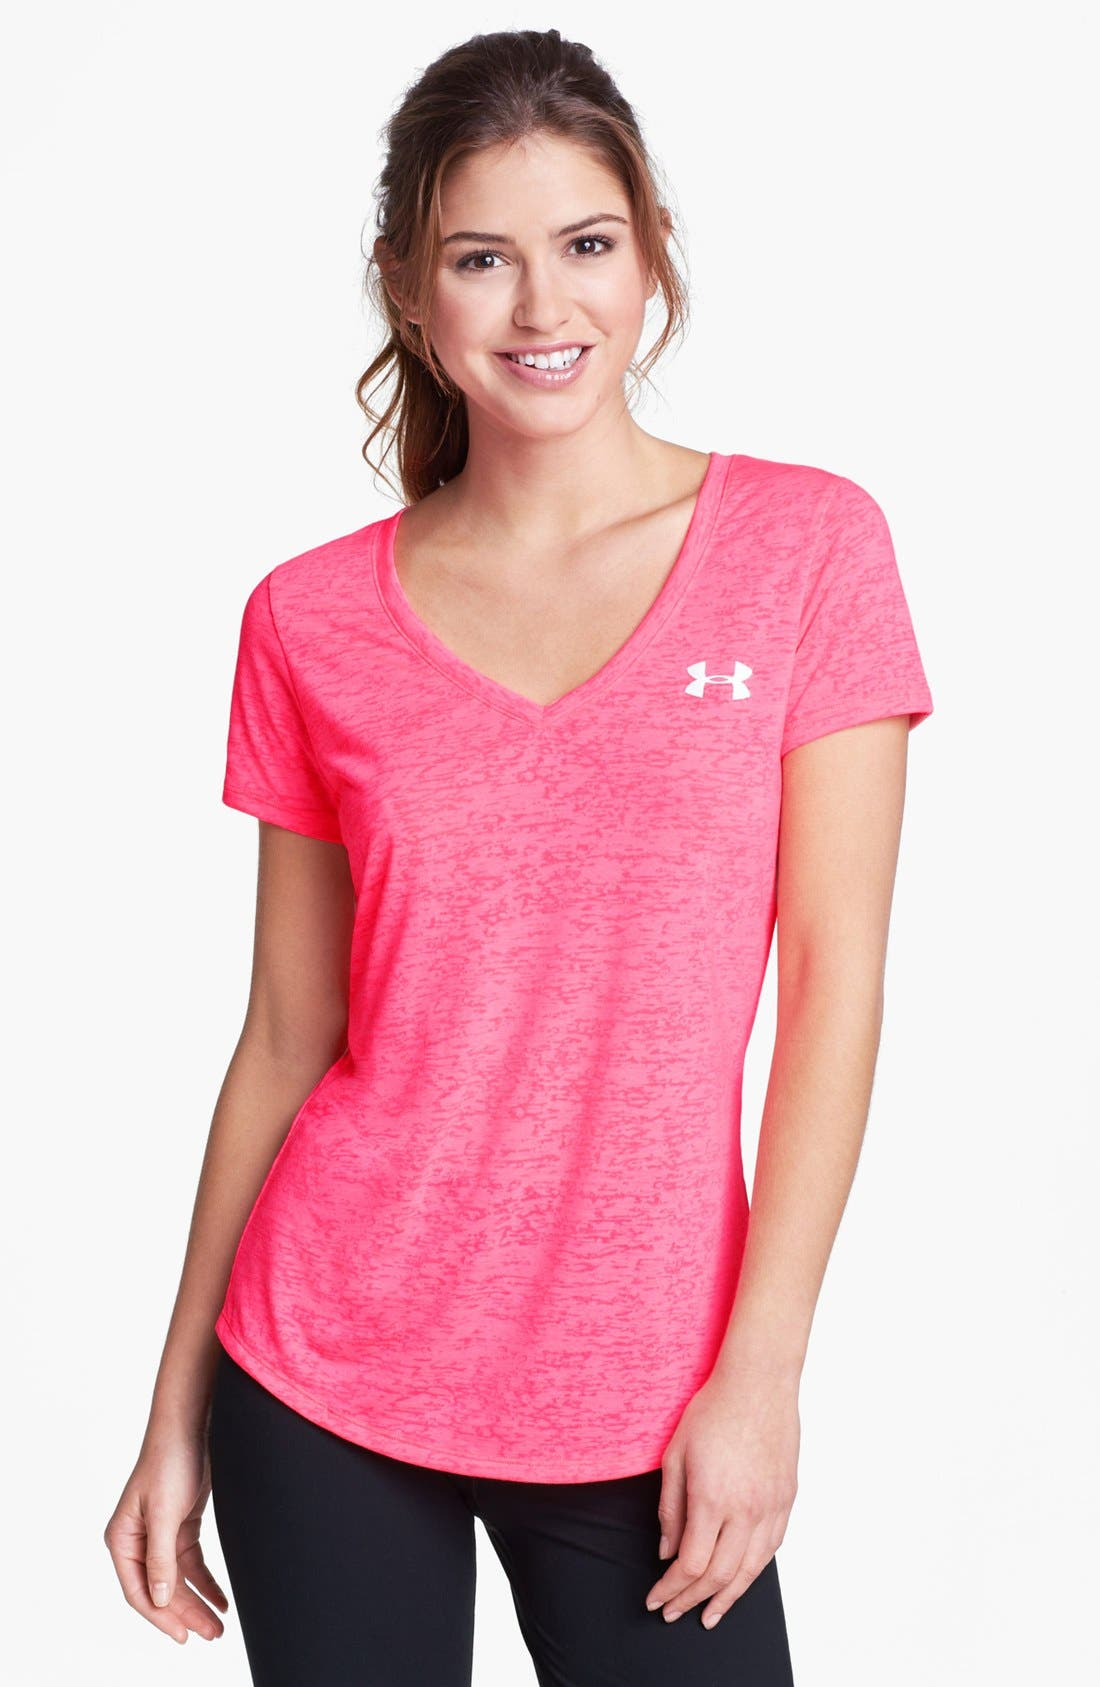 Alternate Image 1 Selected - Under Armour 'Power in Pink Achieve' Tee